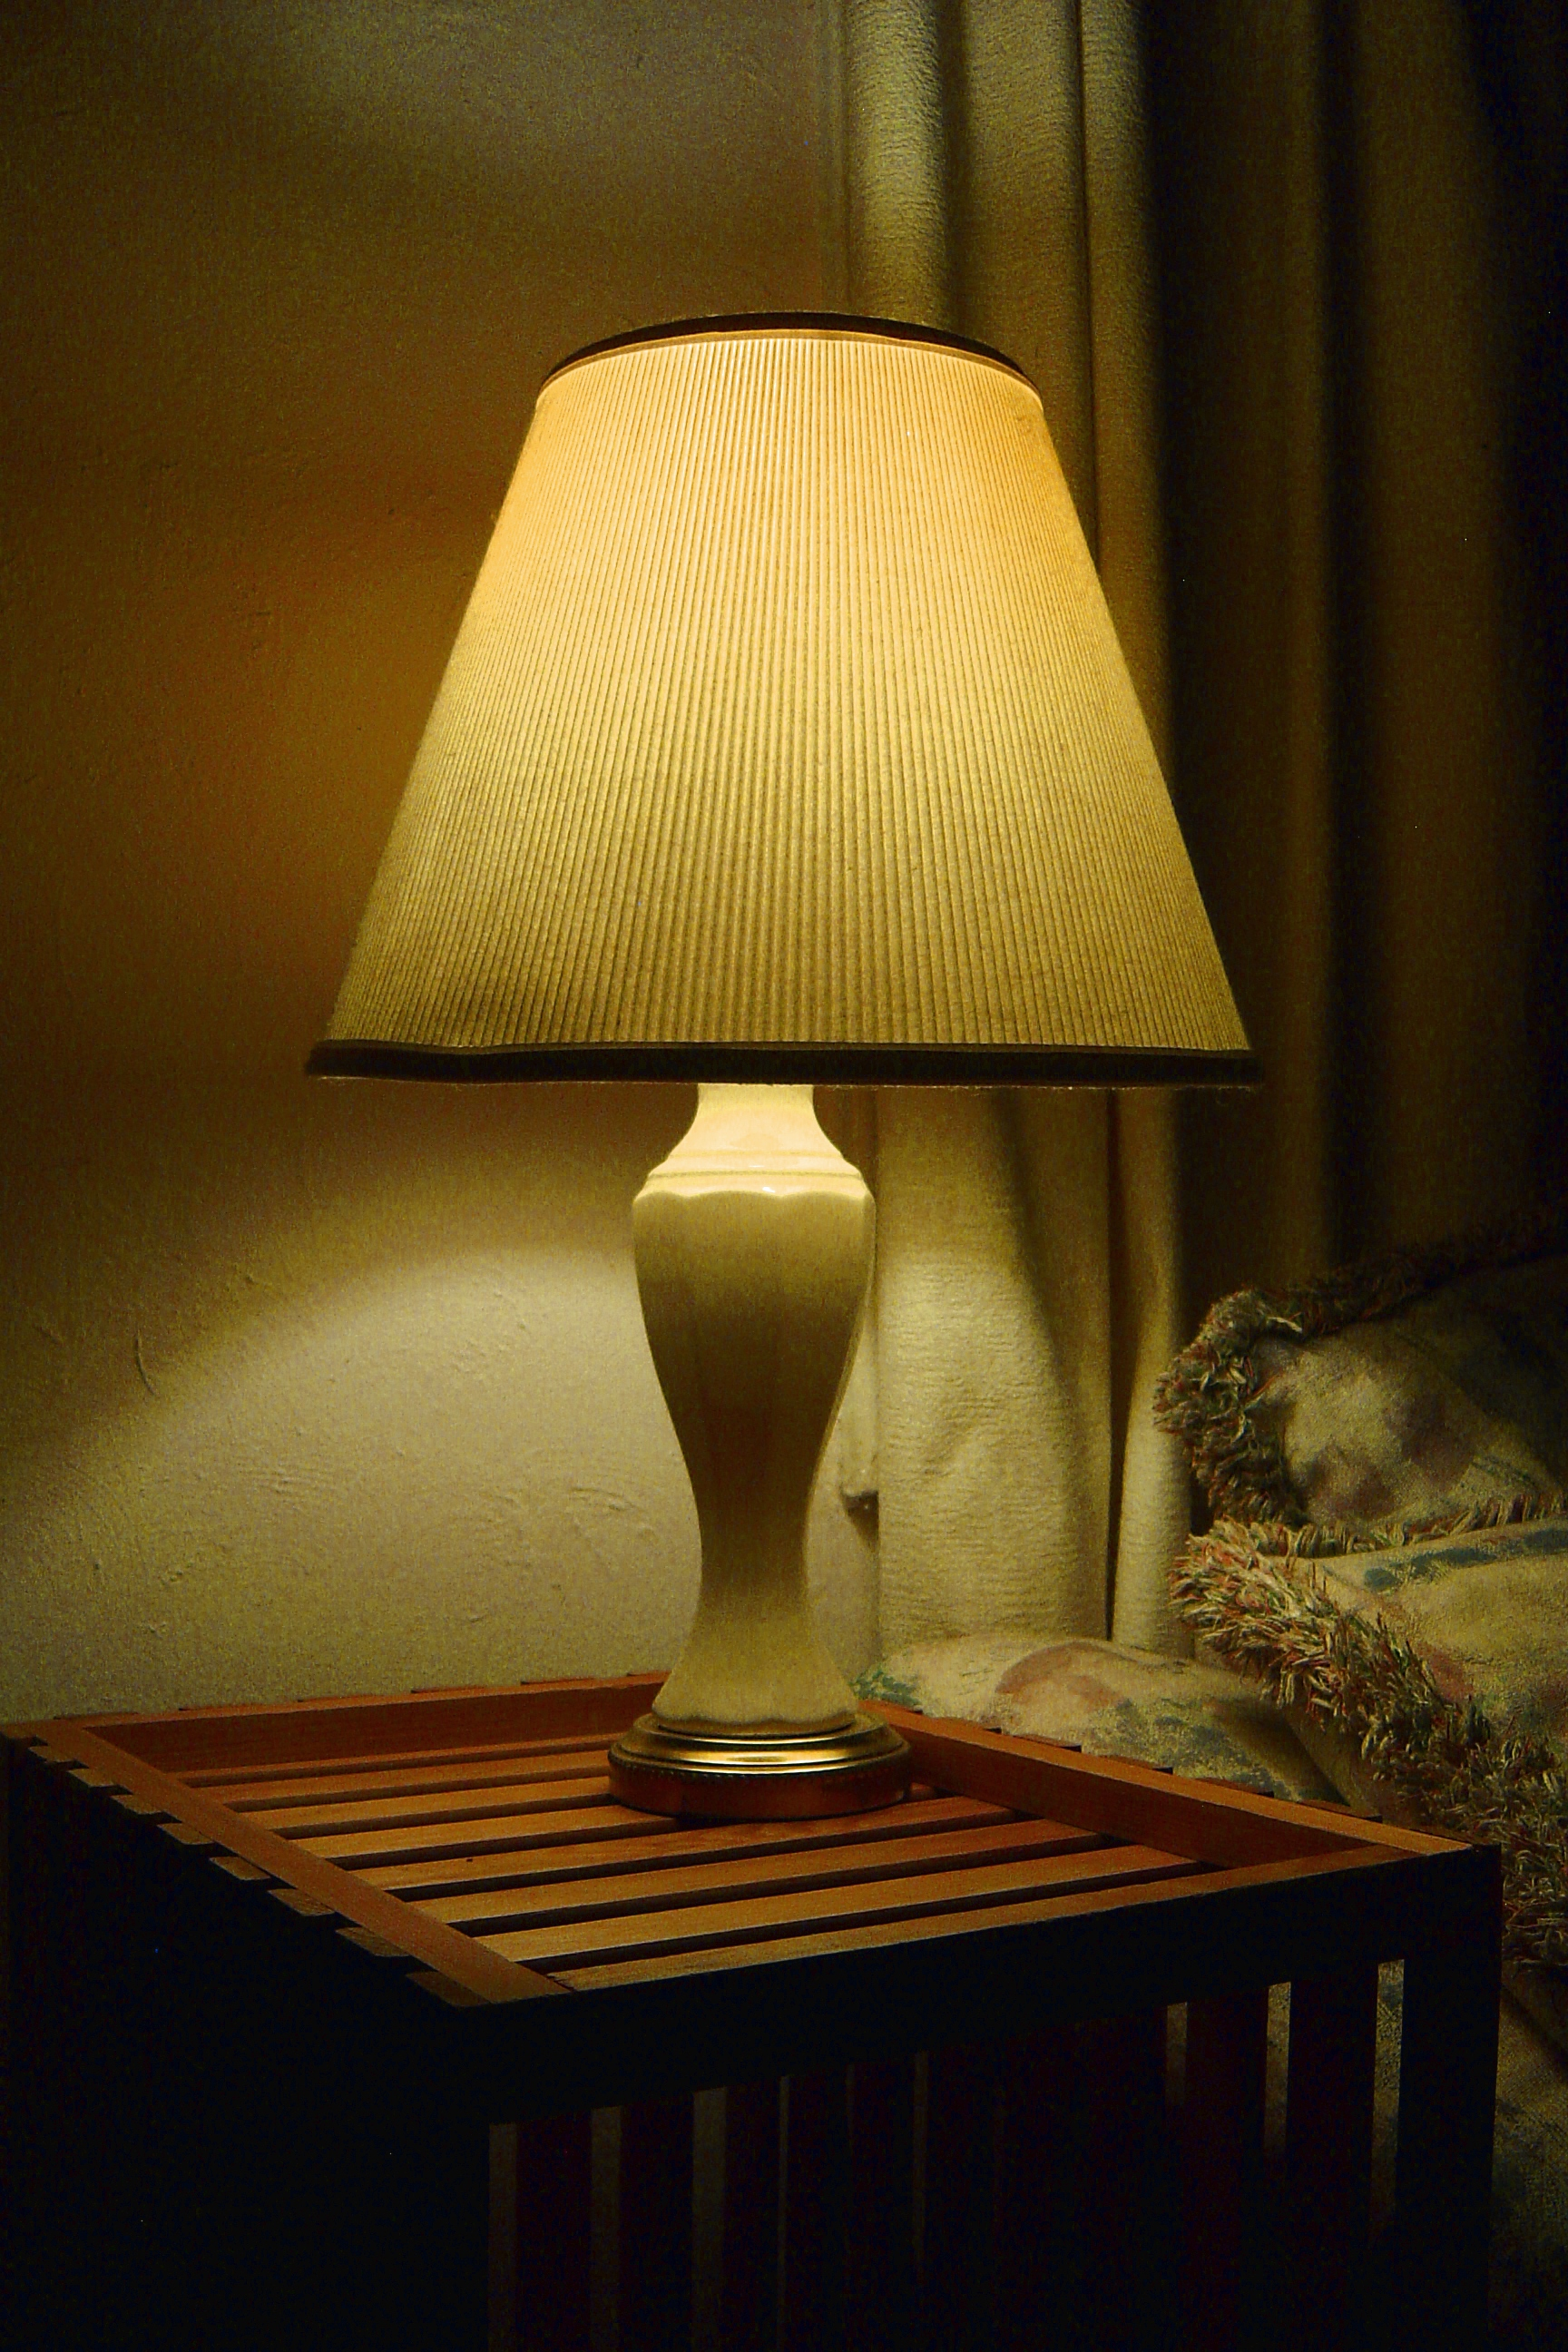 Living Room Lamp Picture Free Photograph Photos Public Domain